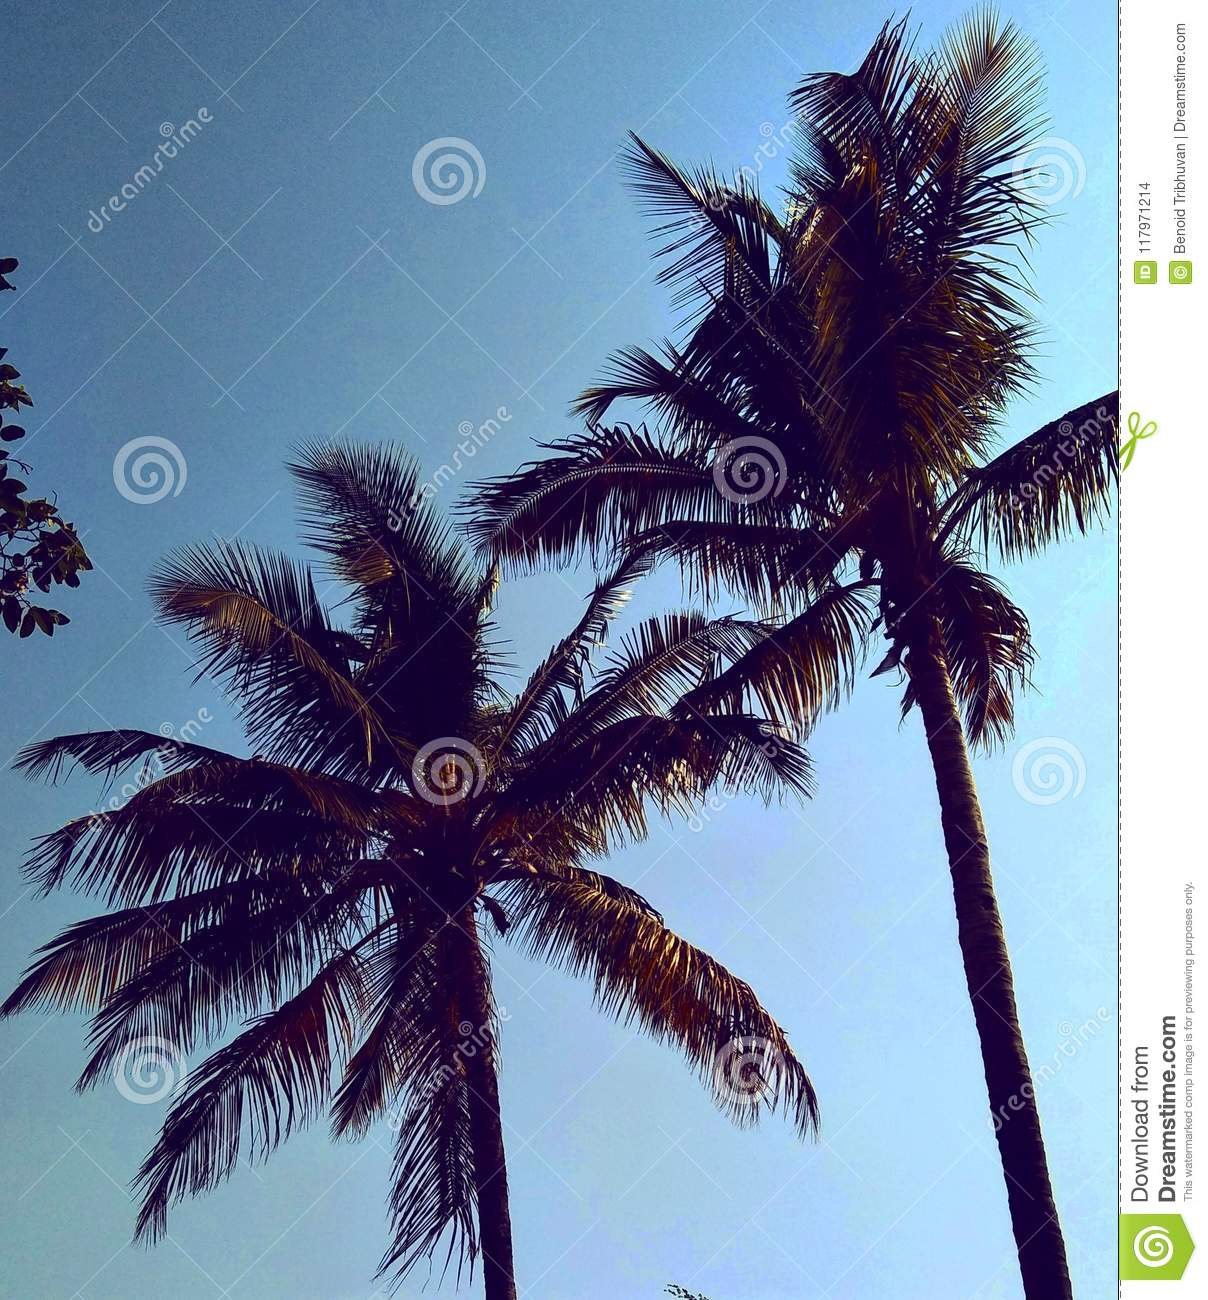 Palm Tree Wallpapers Palm Tree Stock Photo Image Of Blue Wallpapers Coconut 117971214